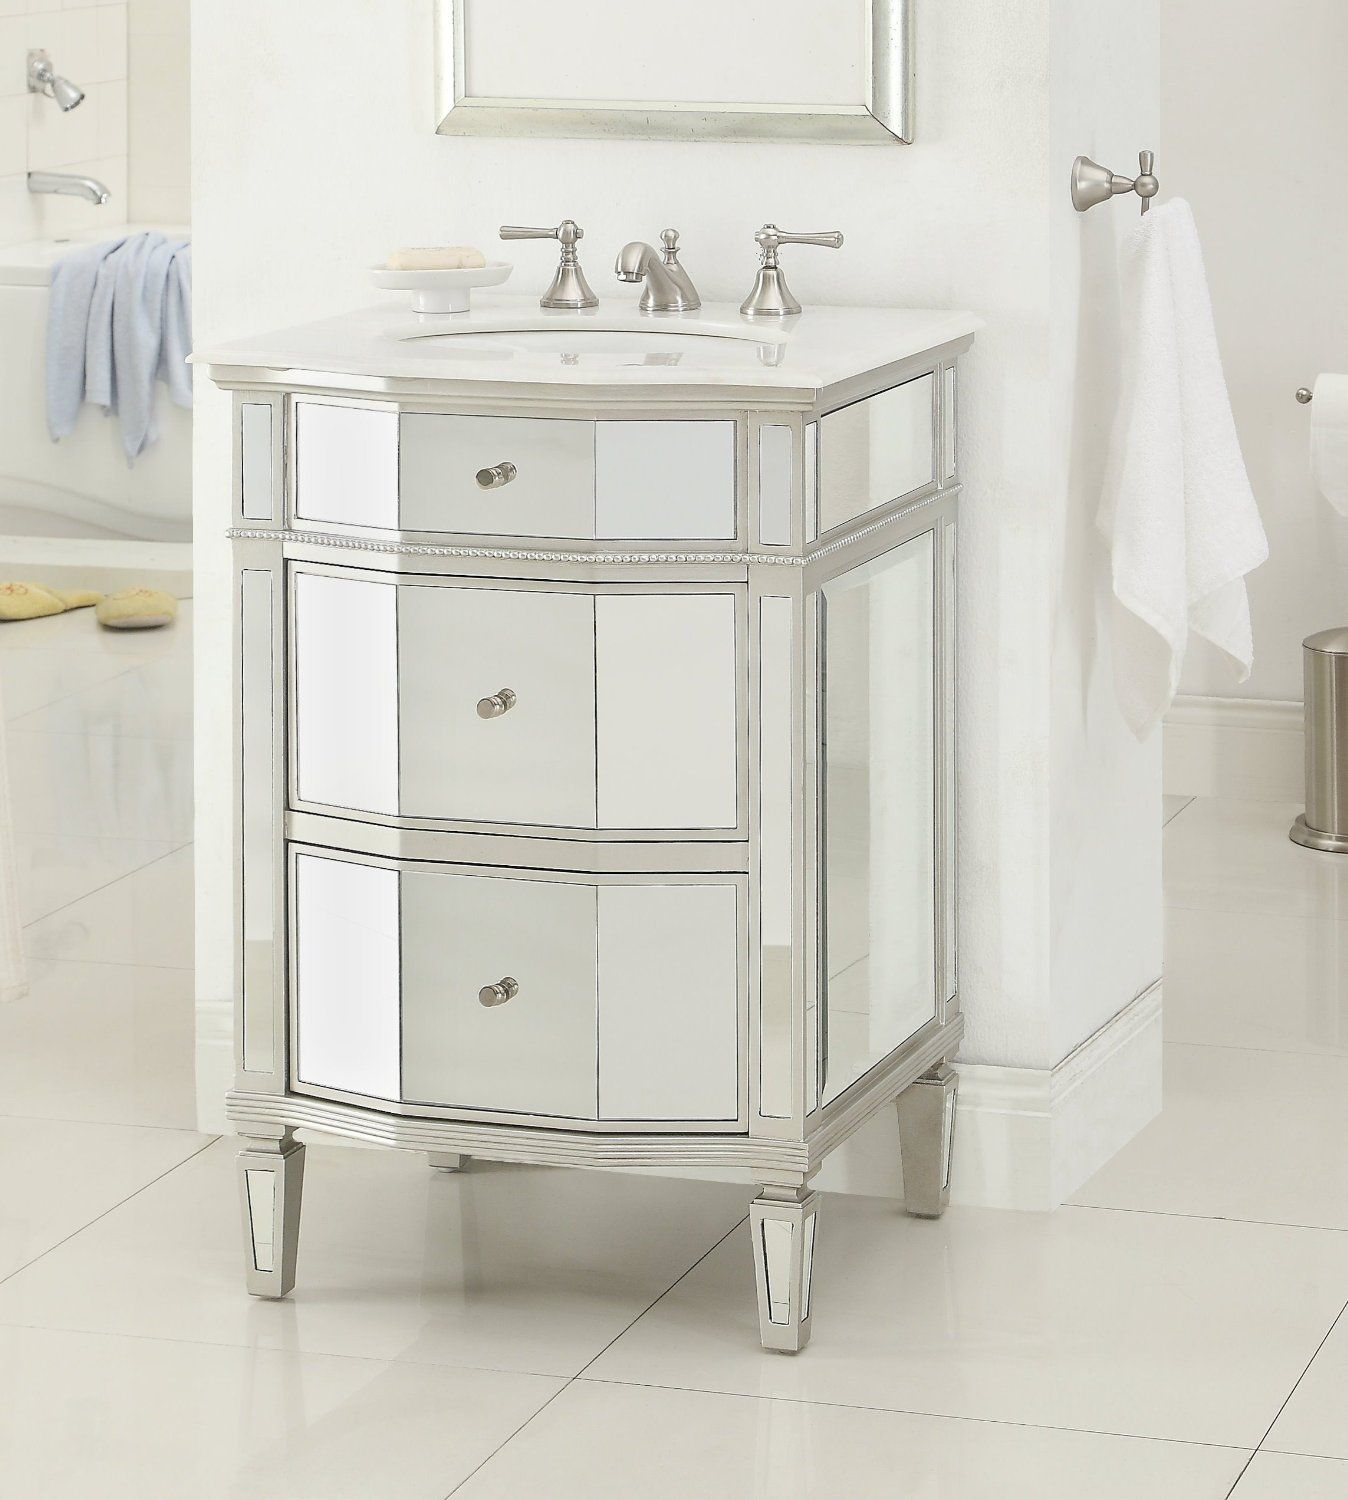 Adelina 24 inch Mirrored Bathroom Vanity, Imperial White marble counter  top, White under mount